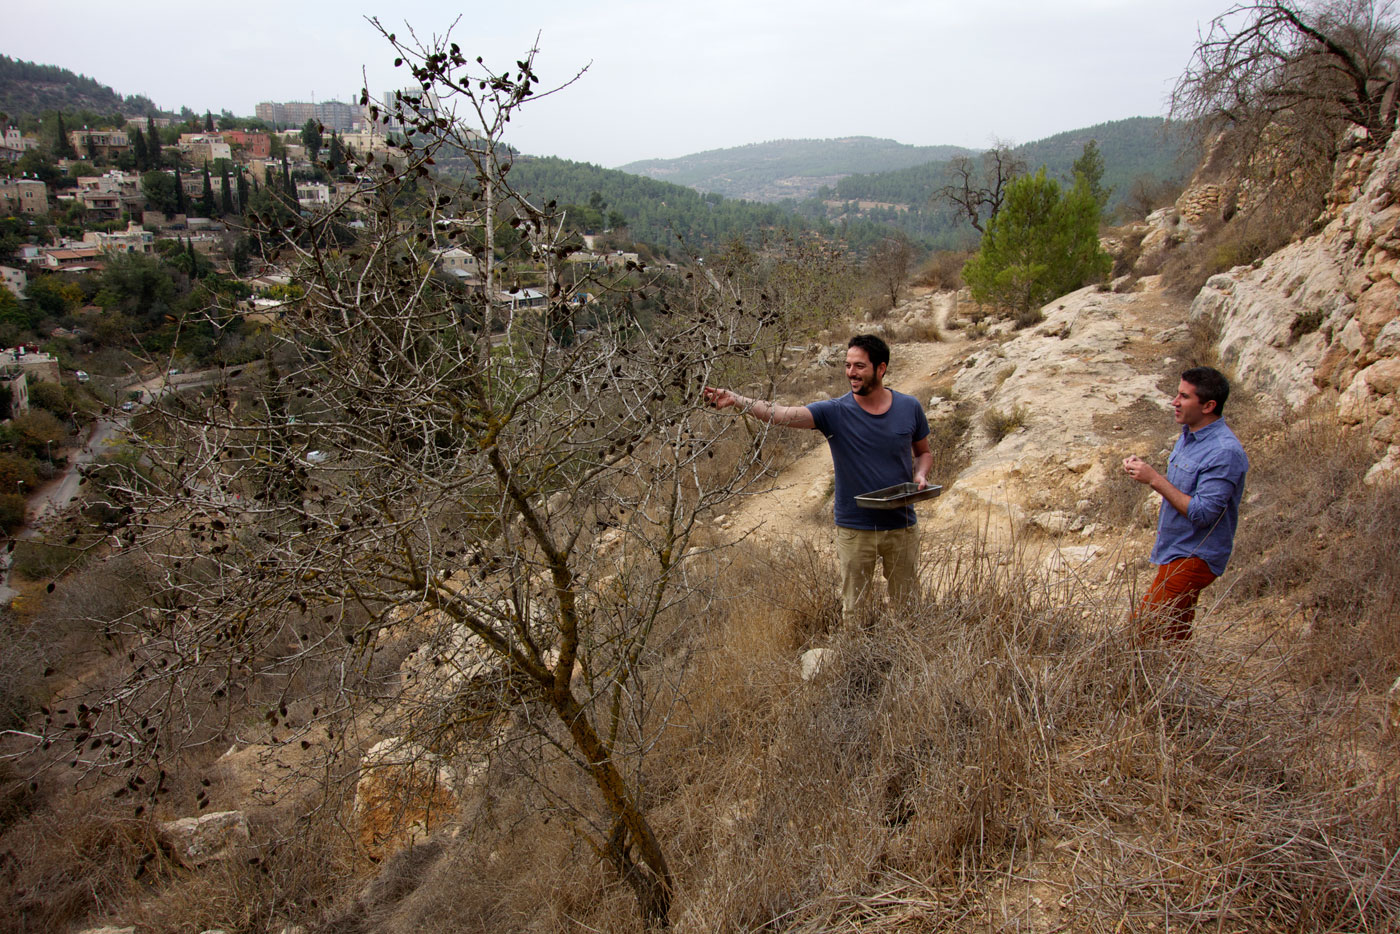 Michael Solomonov on a foraging tour in the Judean hills